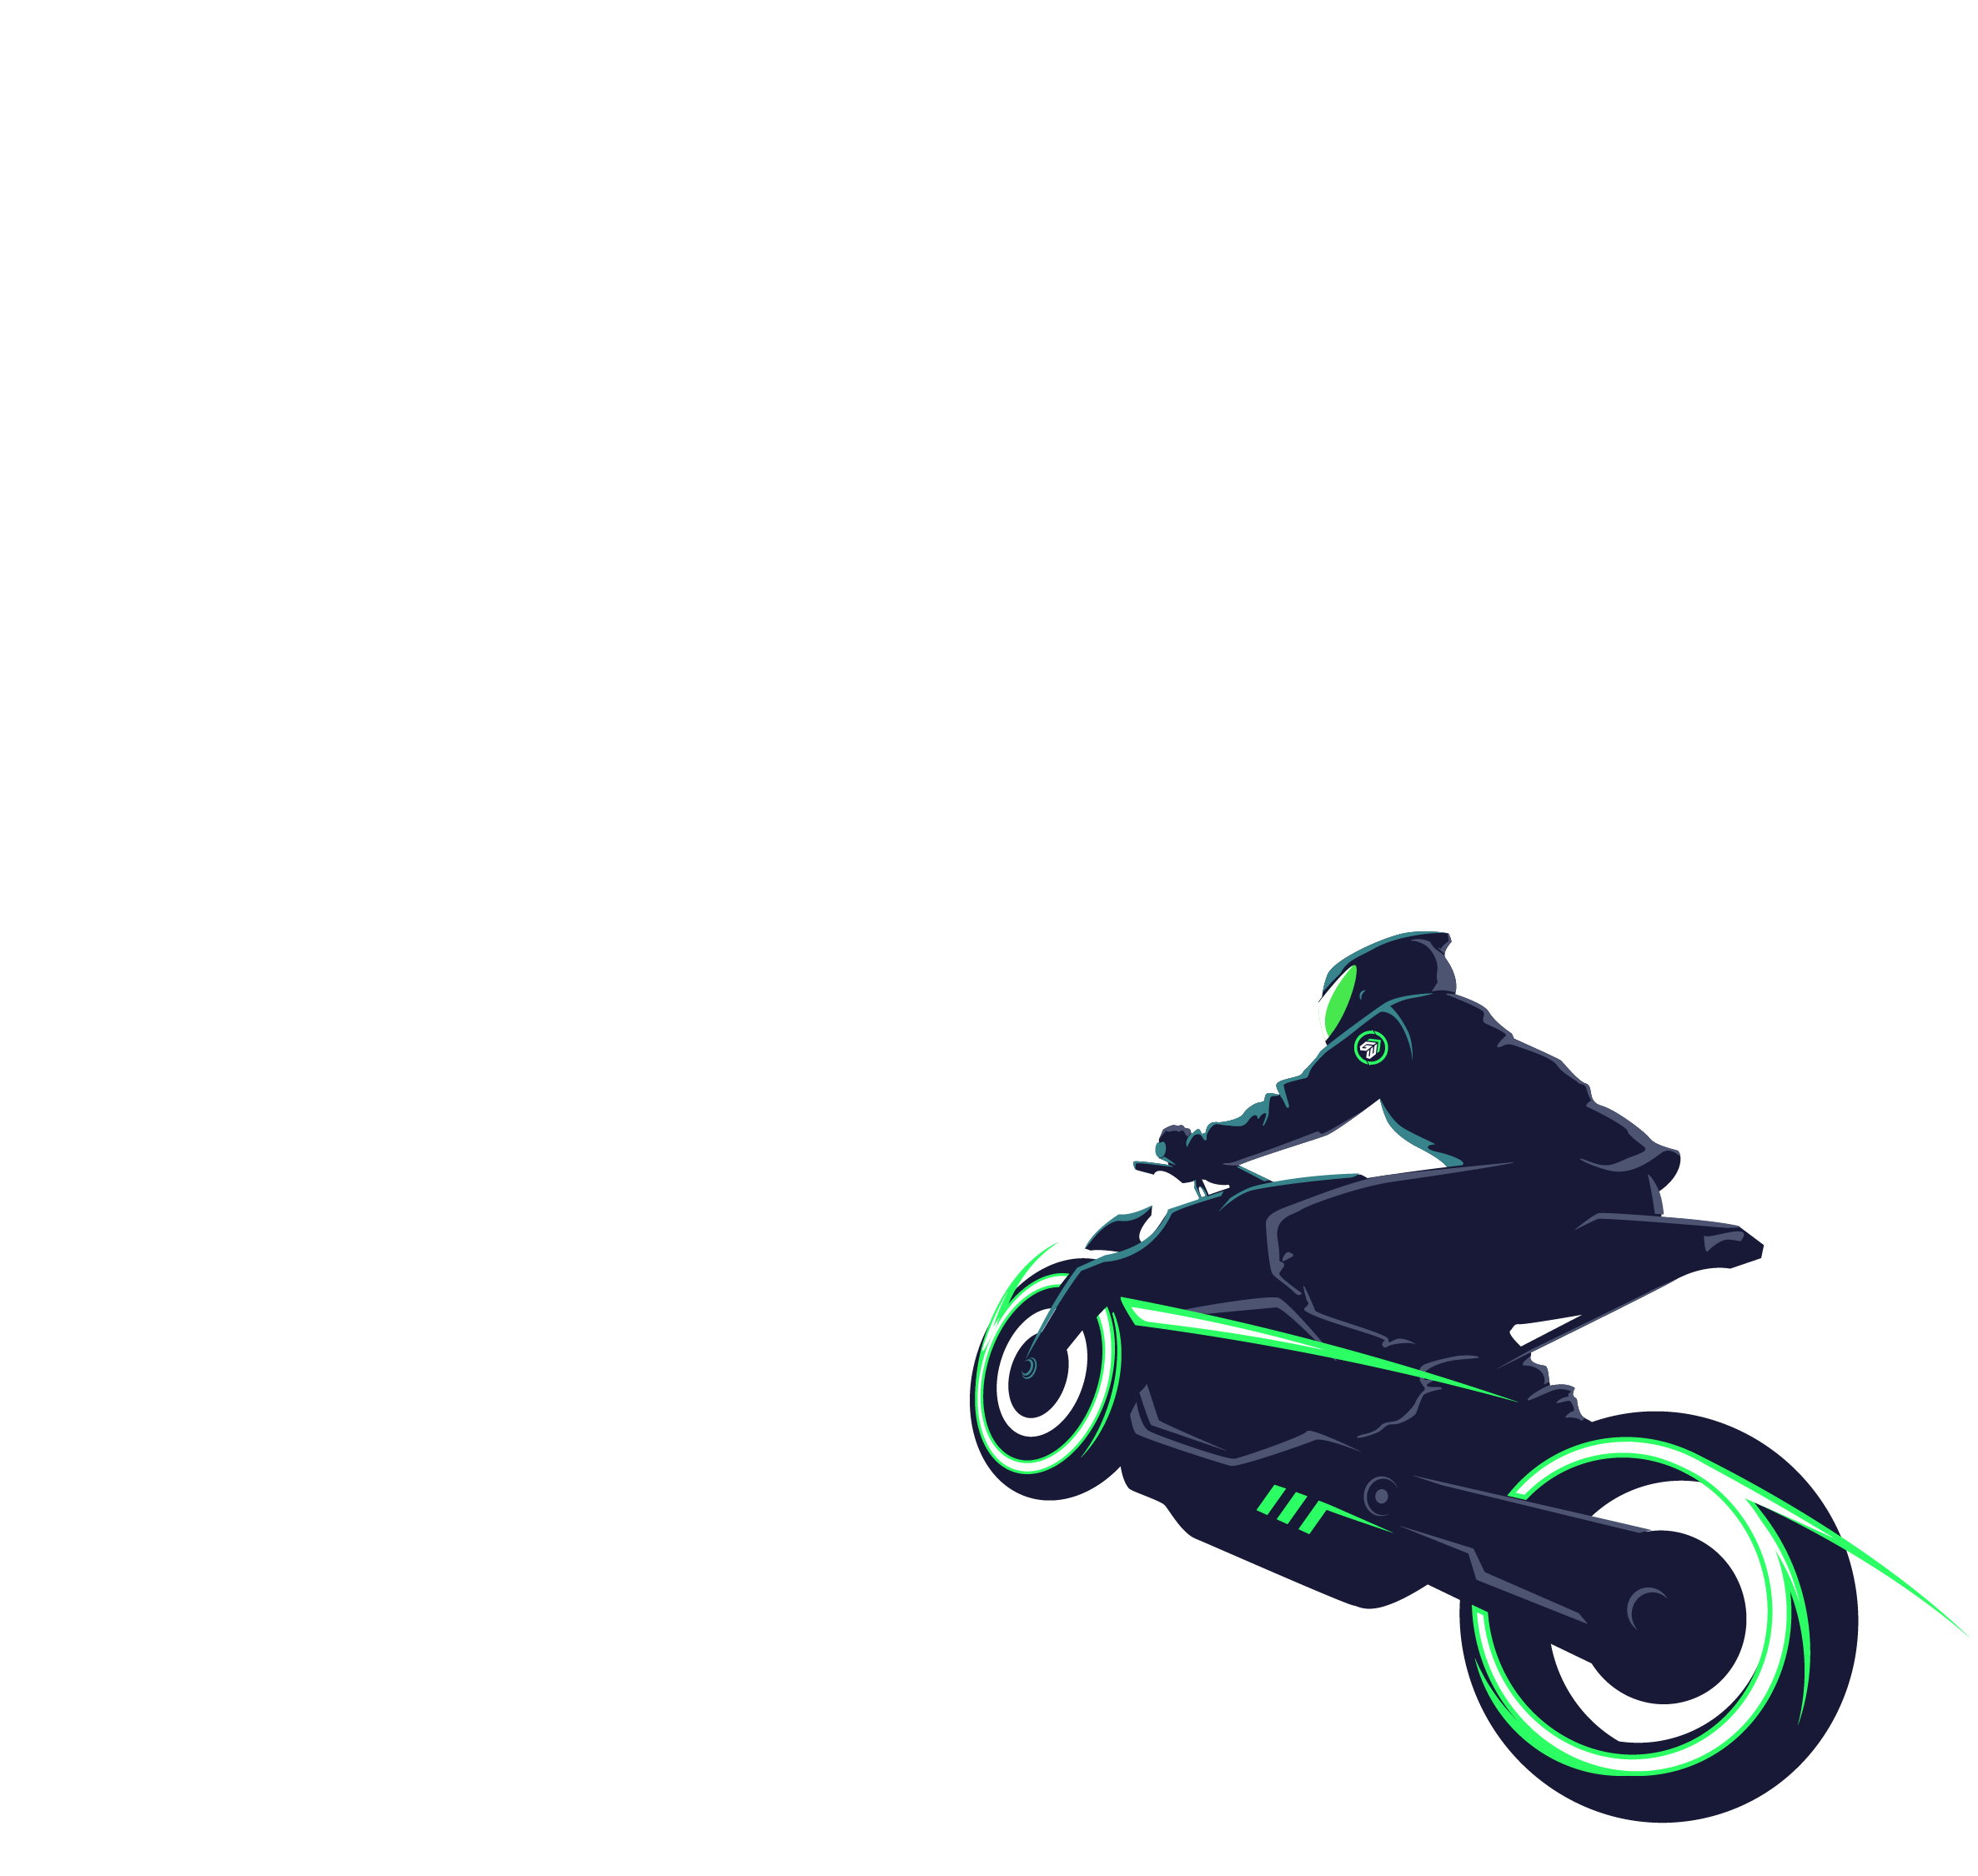 An illustration of a person riding a motorcycle through a forest with multiple checkpoints to reach a digital mountain.